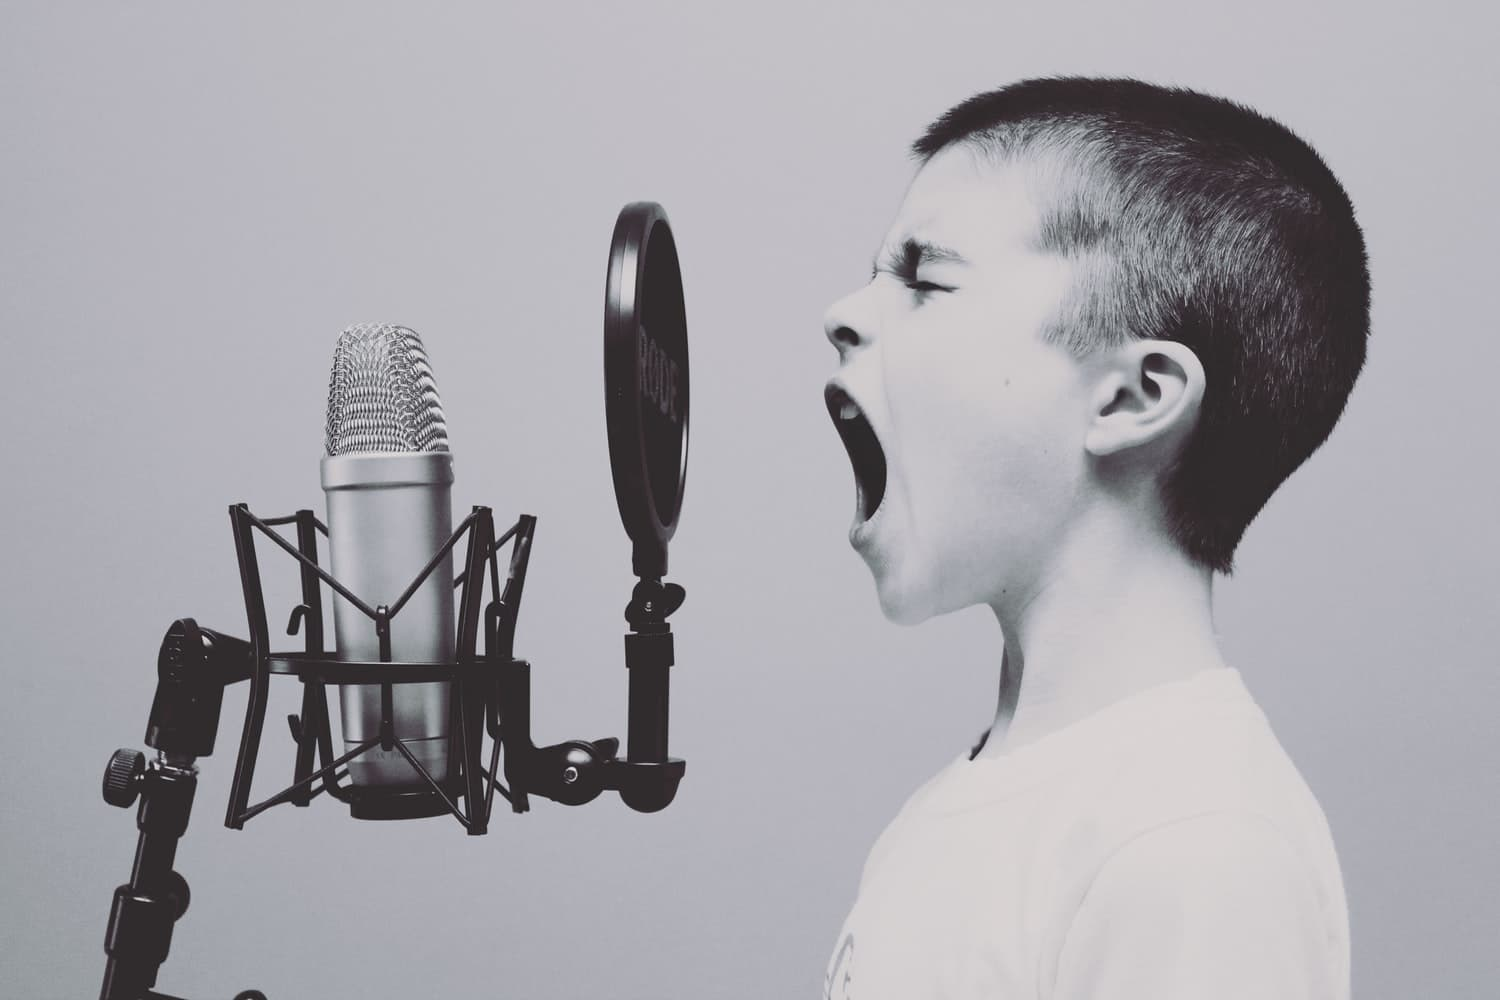 Boy shouting on a microphone